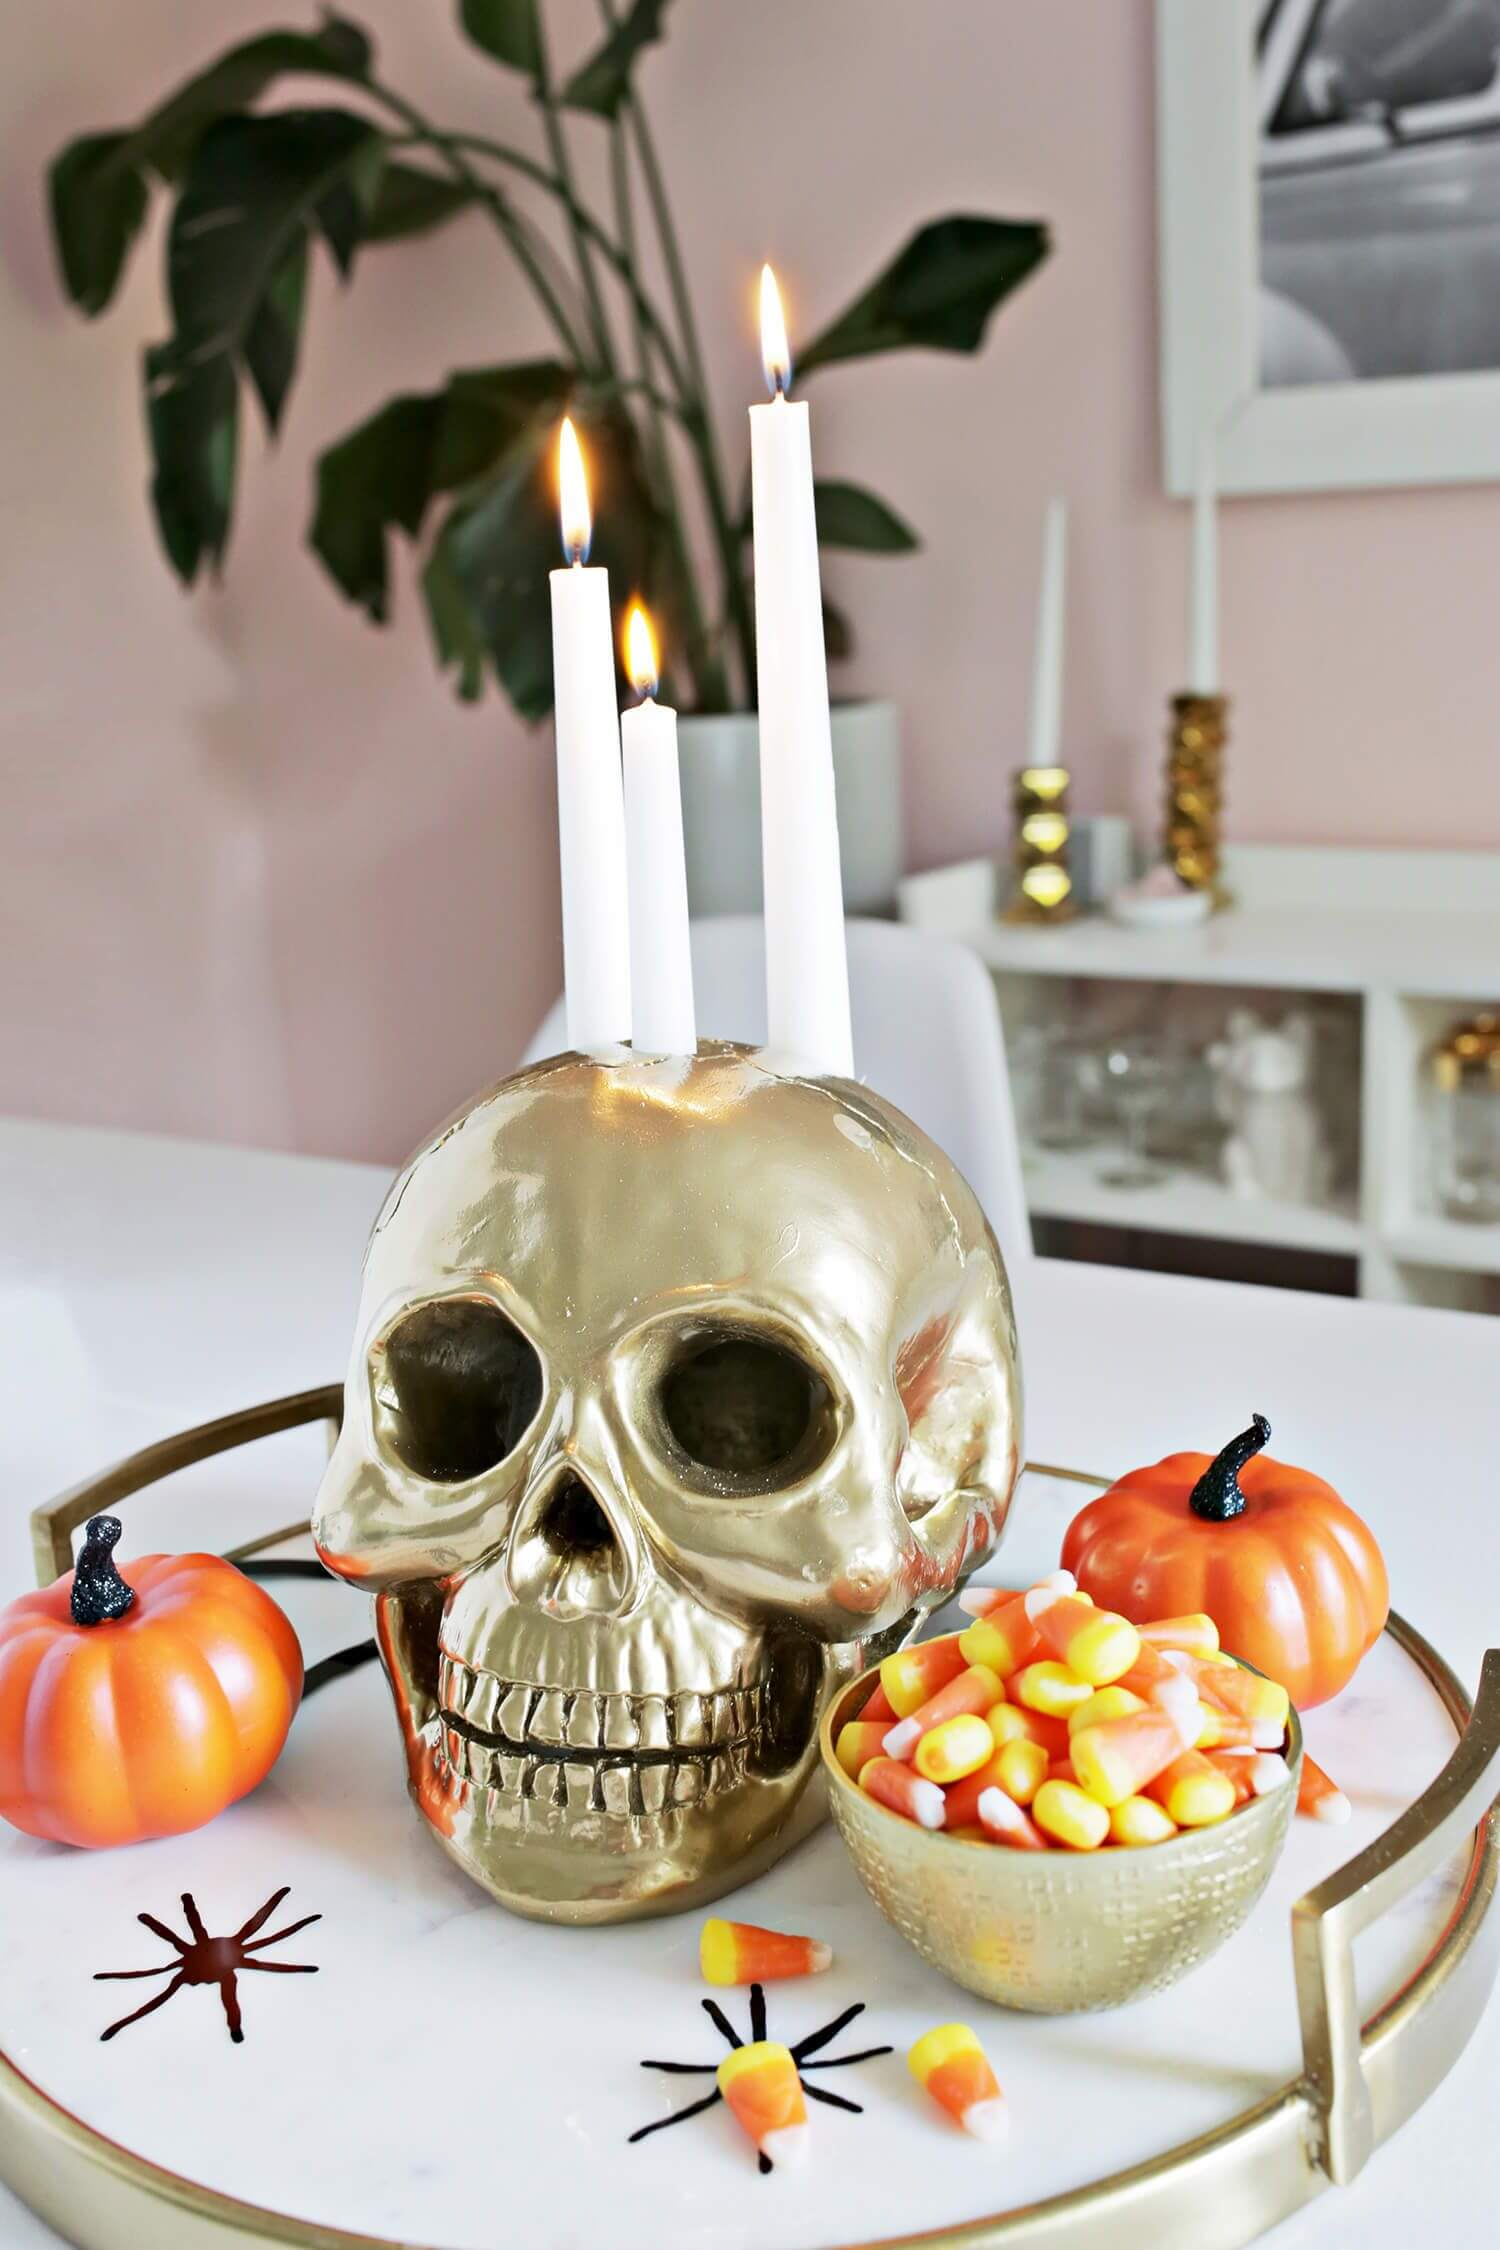 Skull candle holder with pumpkin for Halloween